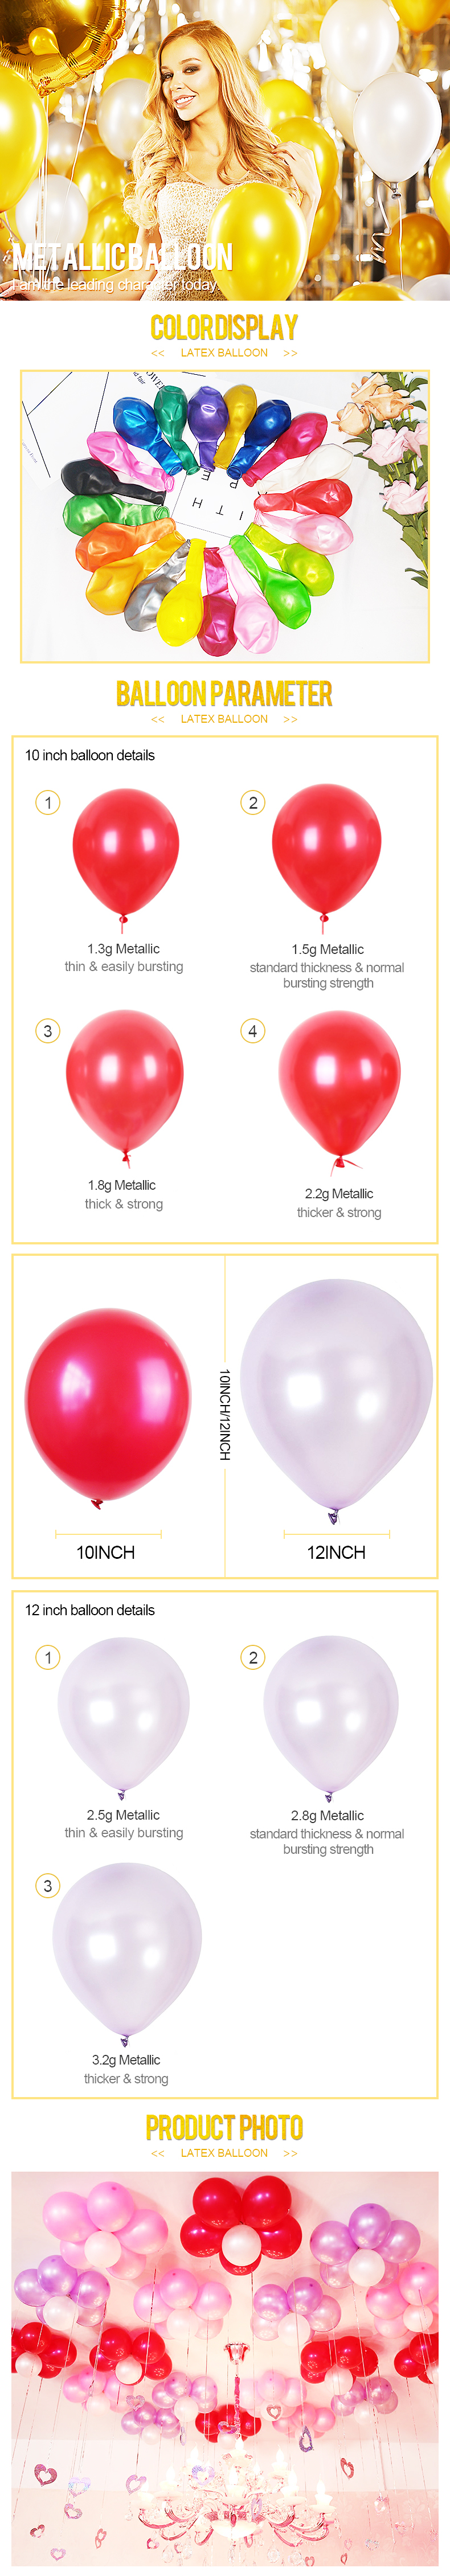 New arrival premium quality custom latex pearl balloon for decoration